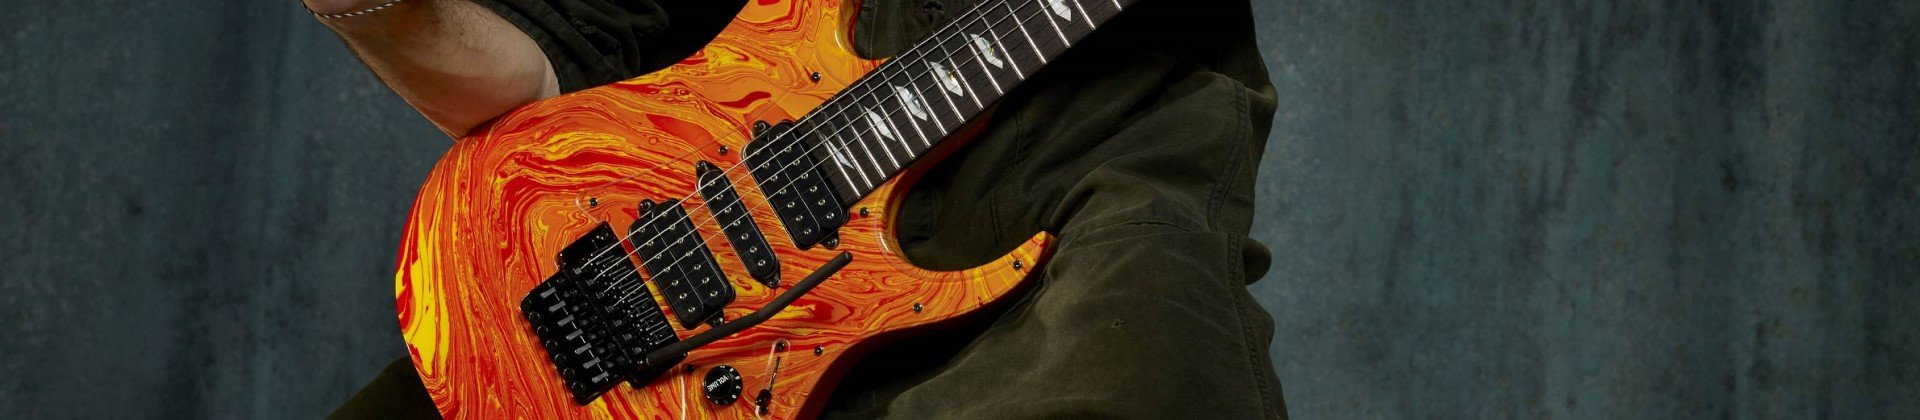 7 Best Ibanez Guitars (Aug  2019) – Reviews & Buying Guide